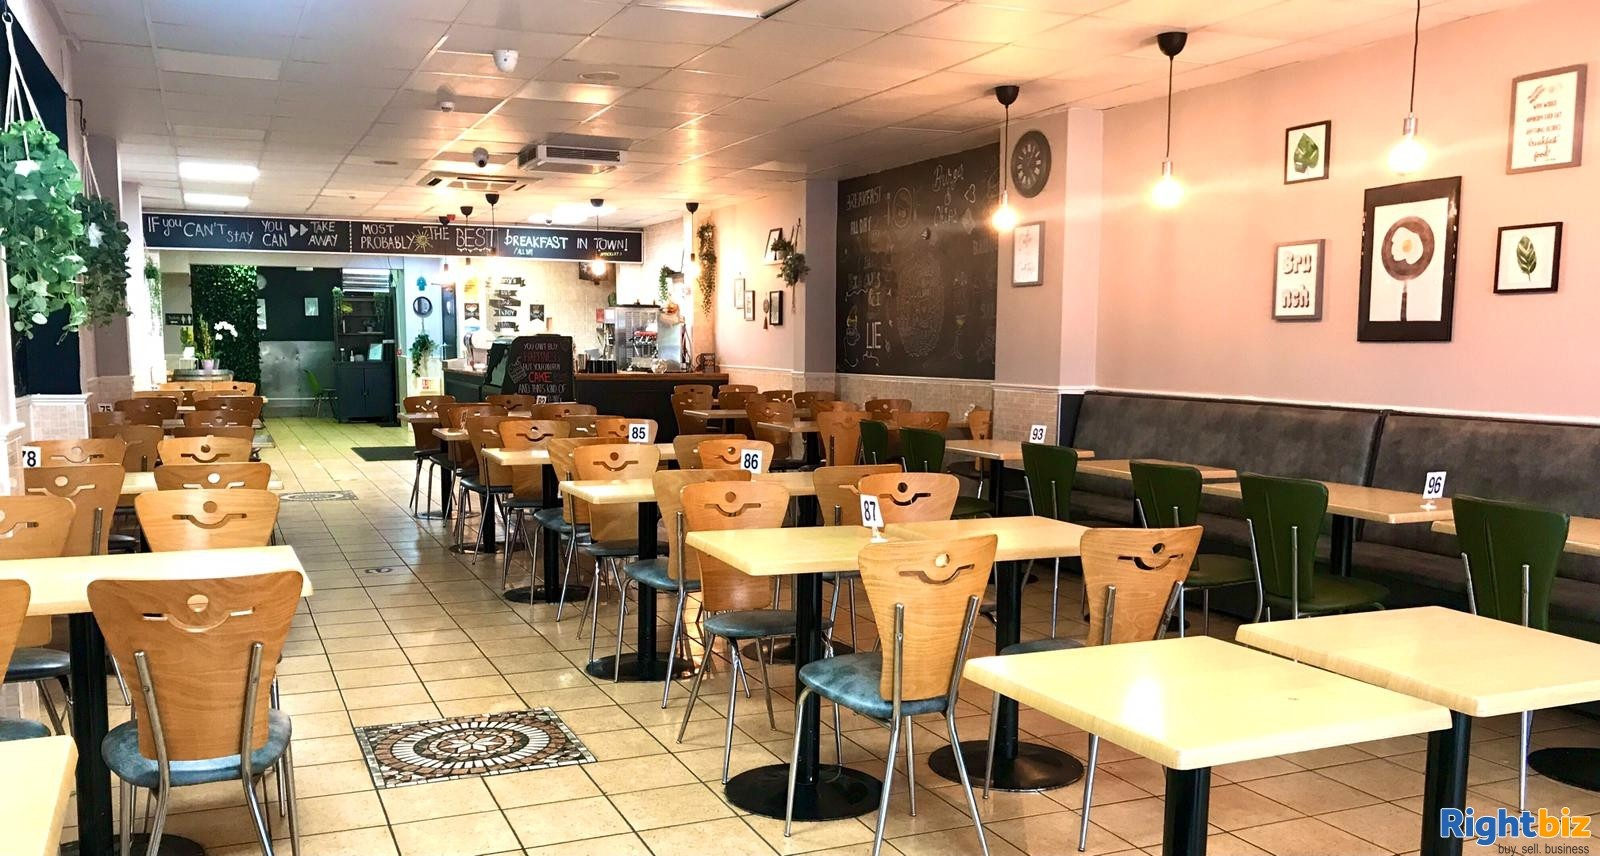 Busy Cafe/Restaurant for sale (120 seats), located on high street, with a large 2 bedroom flat - Image 4